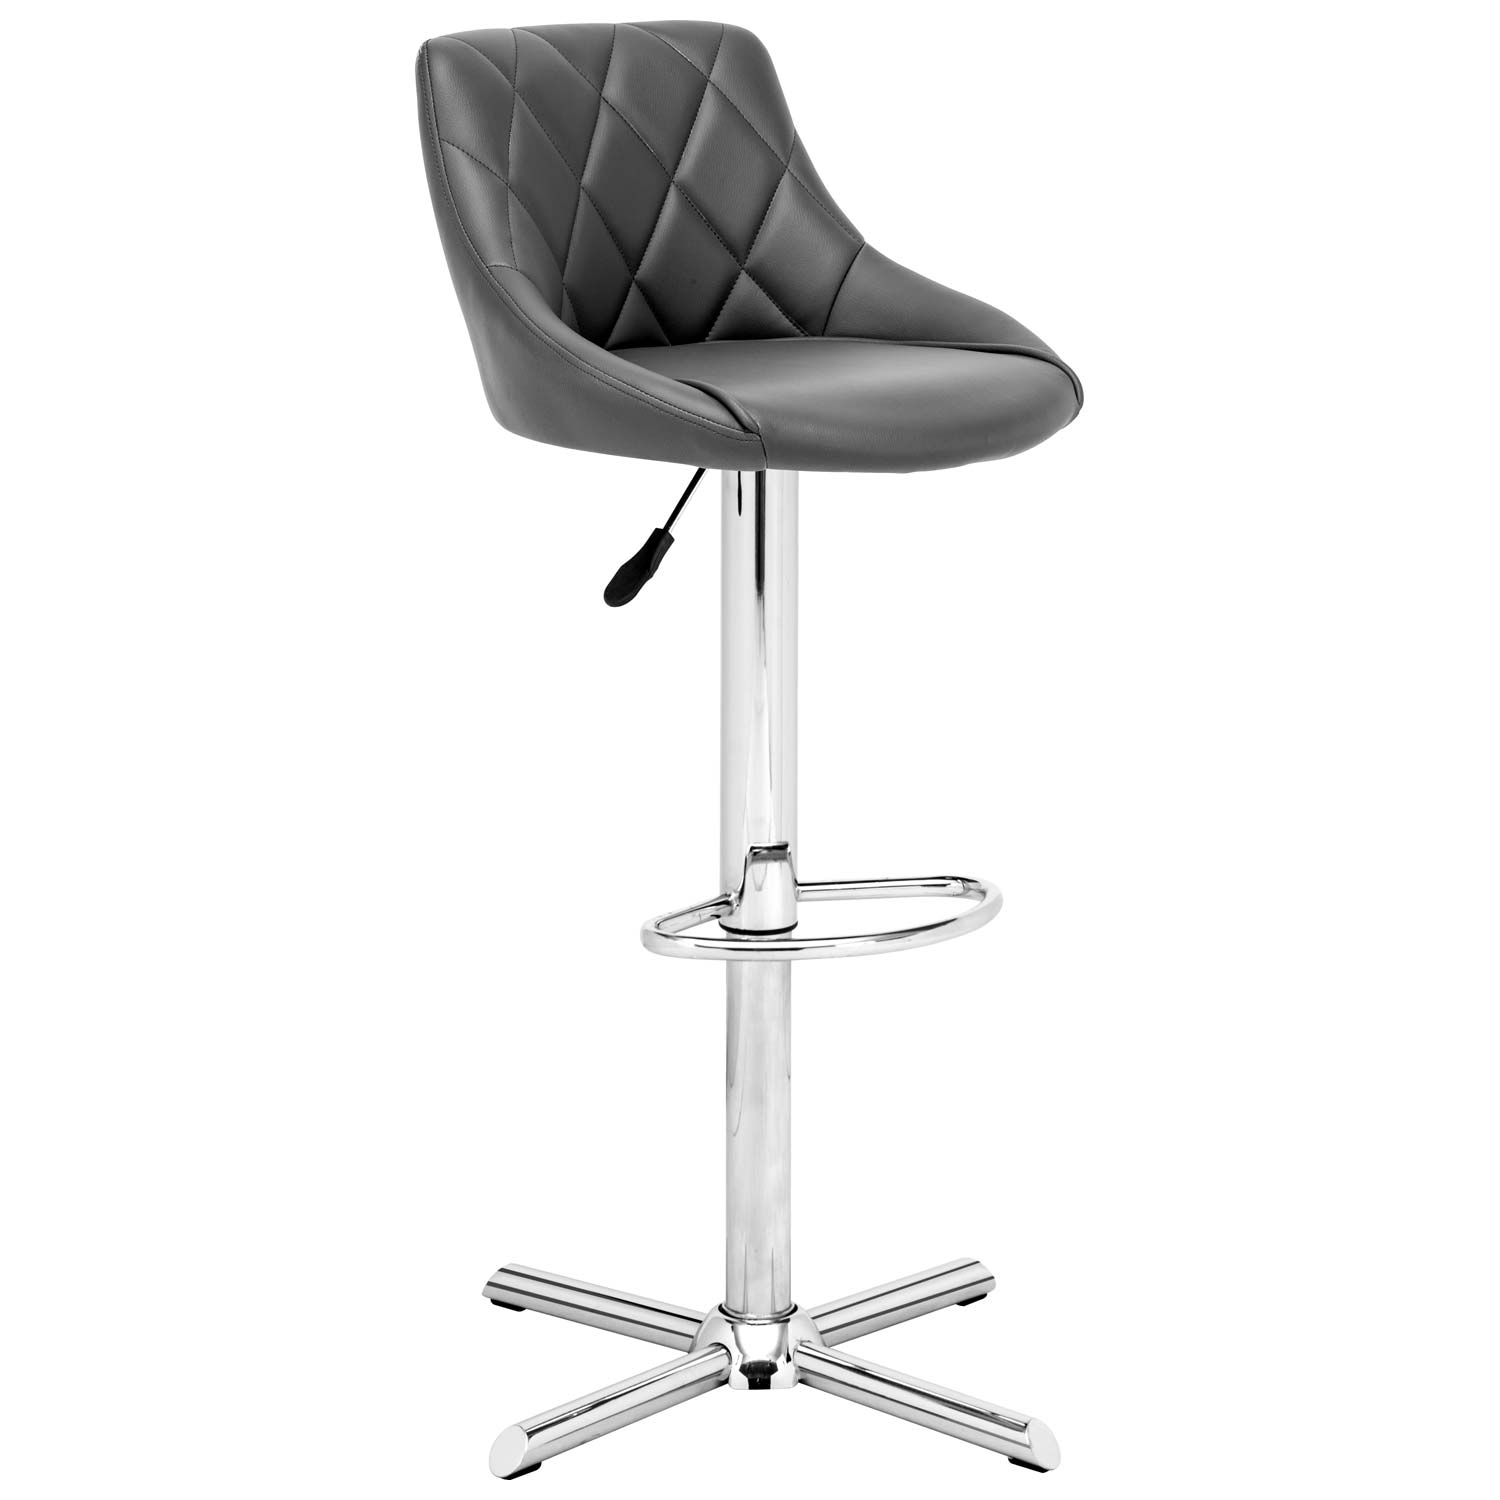 Devilin Diamond Tufted Bar Stool - Chrome Steel, Gray